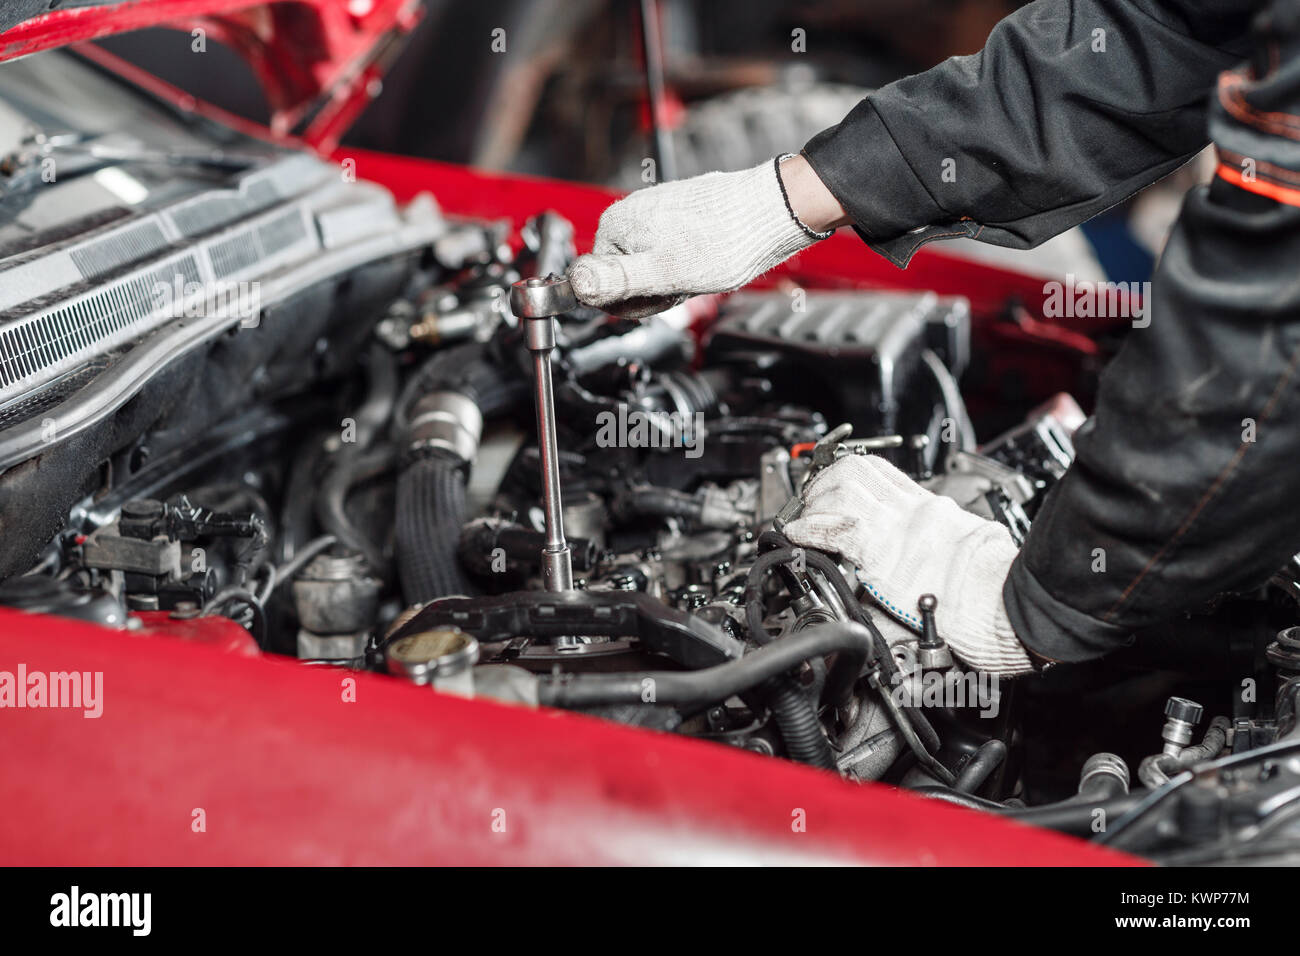 Repairing of modern diesel engine, workers hands and tool. Close-up of an auto mechanic working on a car motor - Stock Image